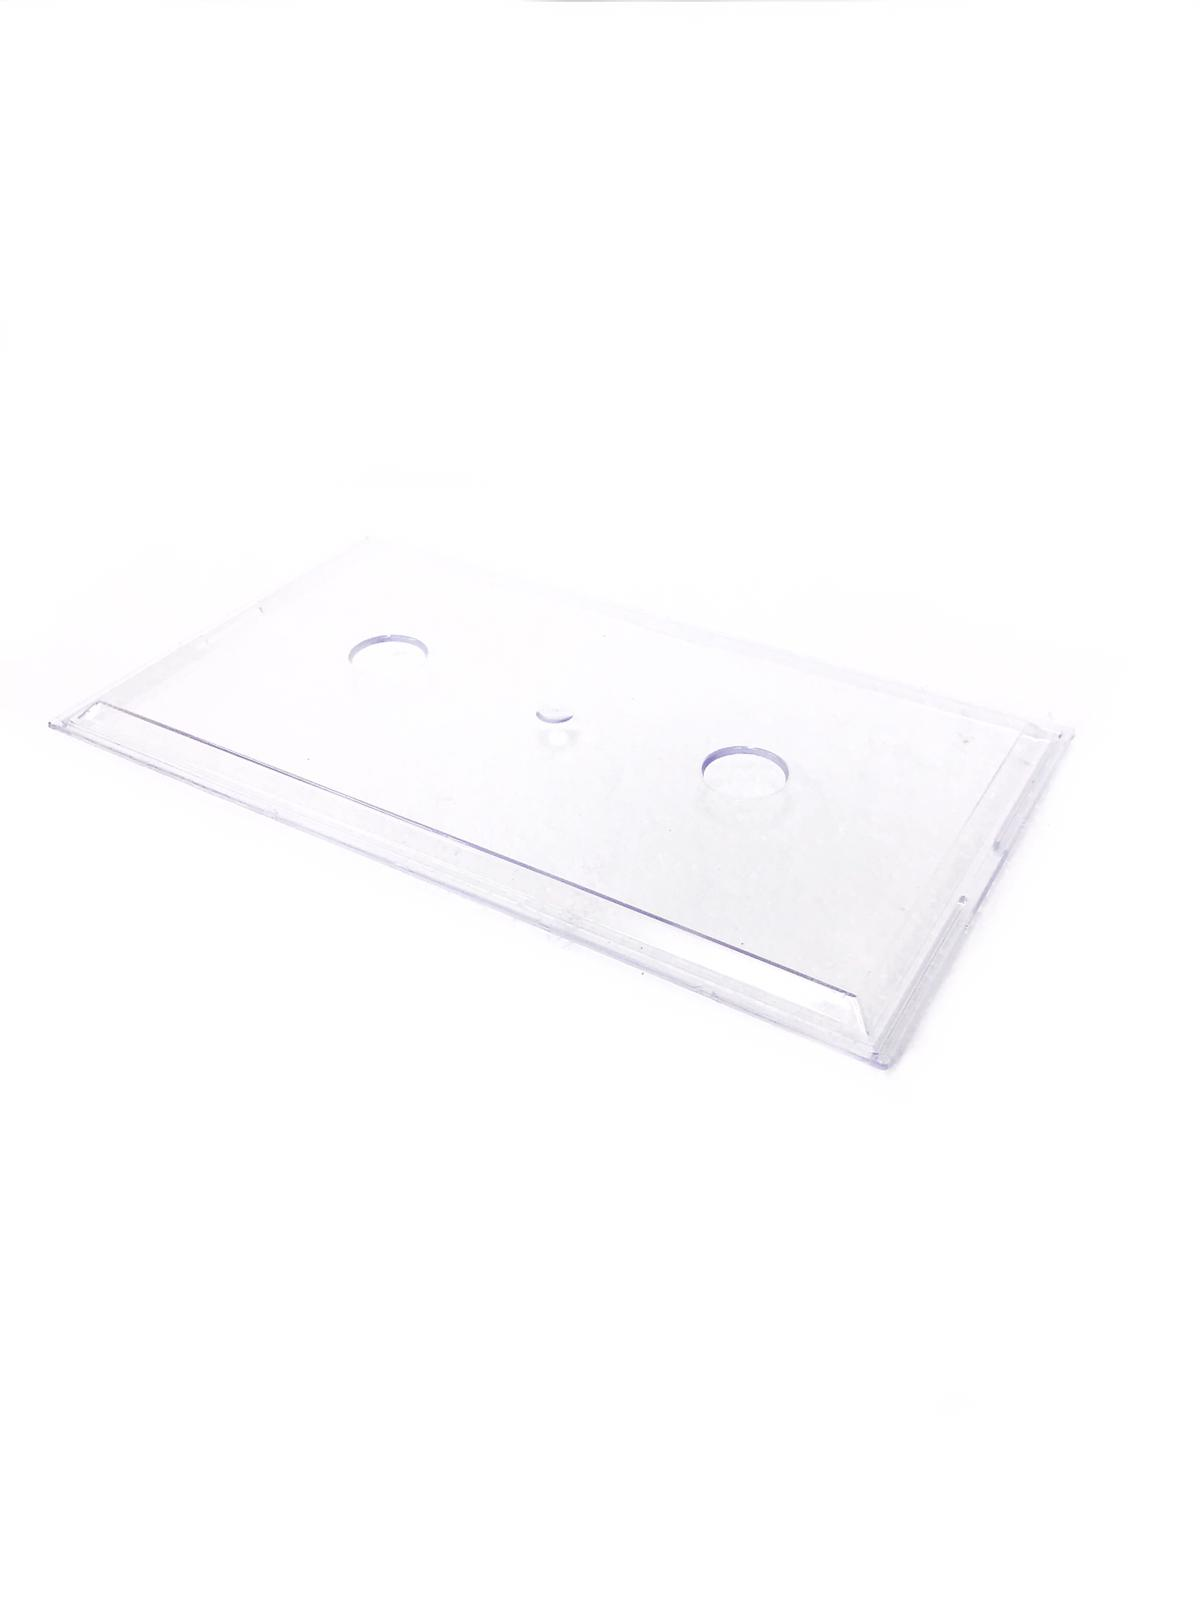 Ista Add On Tray - Top Cover